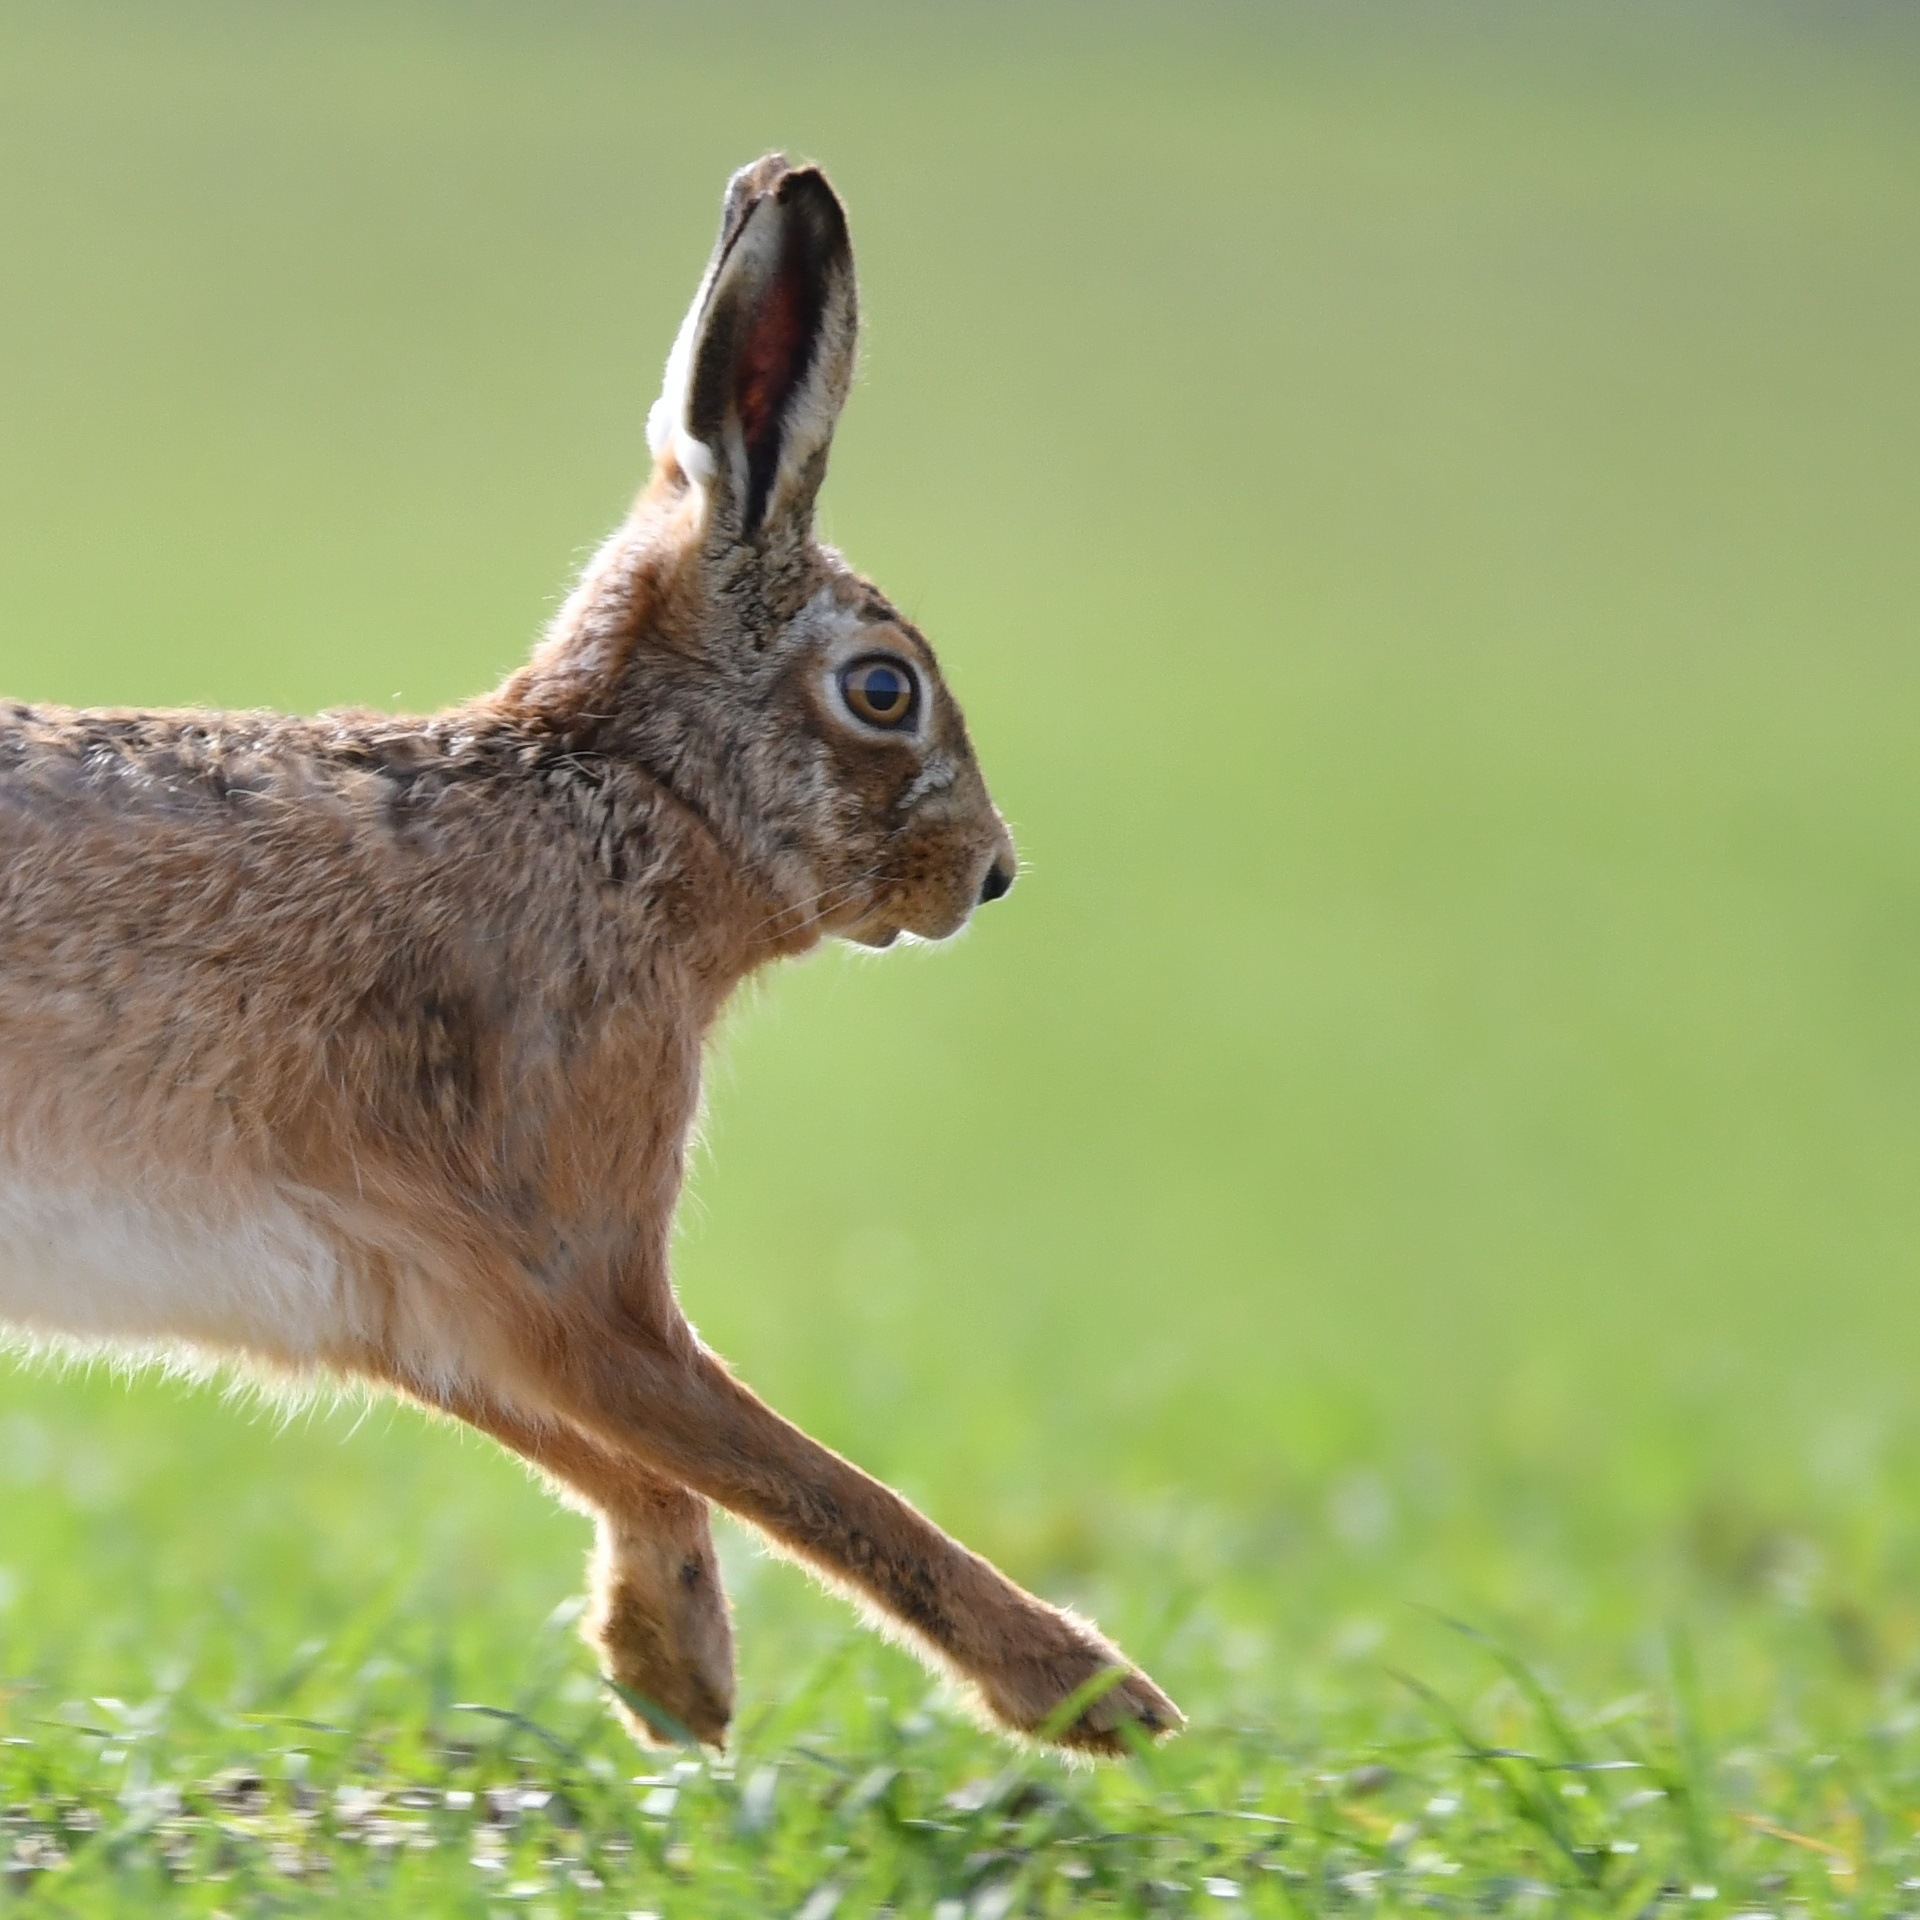 Hare by Isa Spirlet